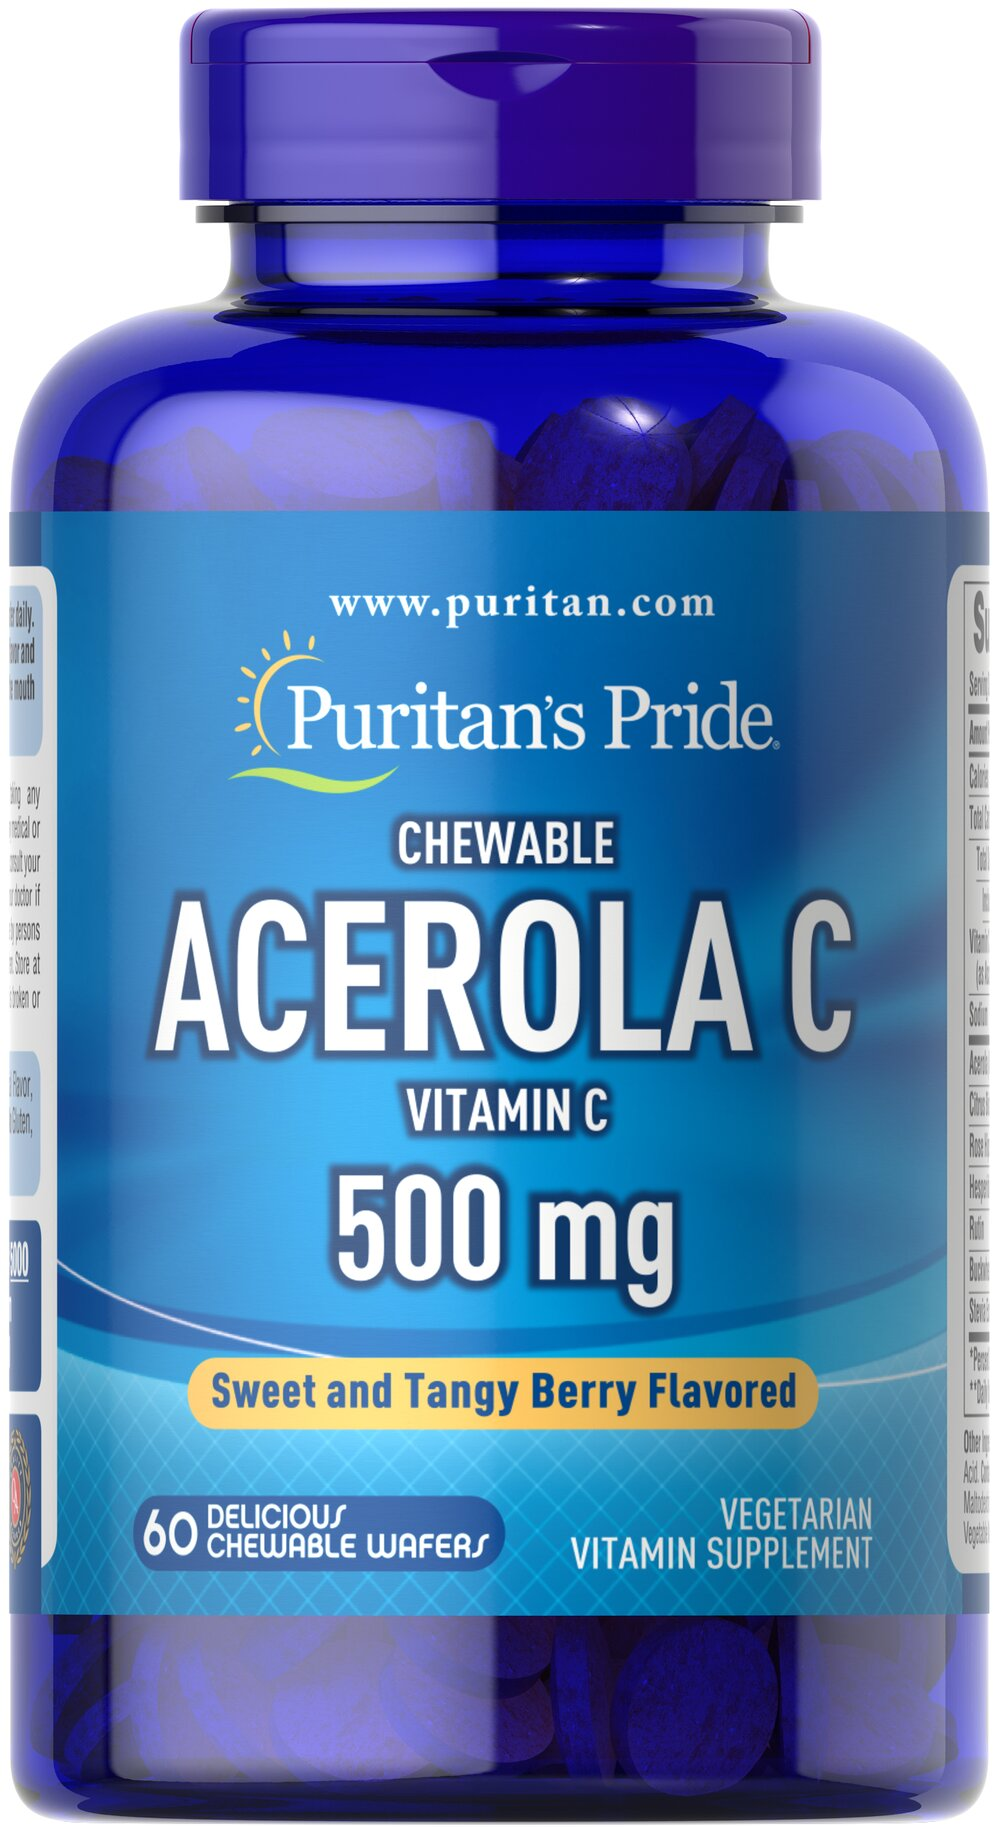 Chewable Acerola C 500 mg <p>Vitamin C is essential to many functions in the body and is one of the leading vitamins for immune support.**</p><p>Offers superior antioxidant support.**</p><p>Supports healthy immune function and promotes well-being.**</p><p>Forms the molecular basis for healthy skin, hair and nails.**</p> 60 Chewables 500 mg $8.99